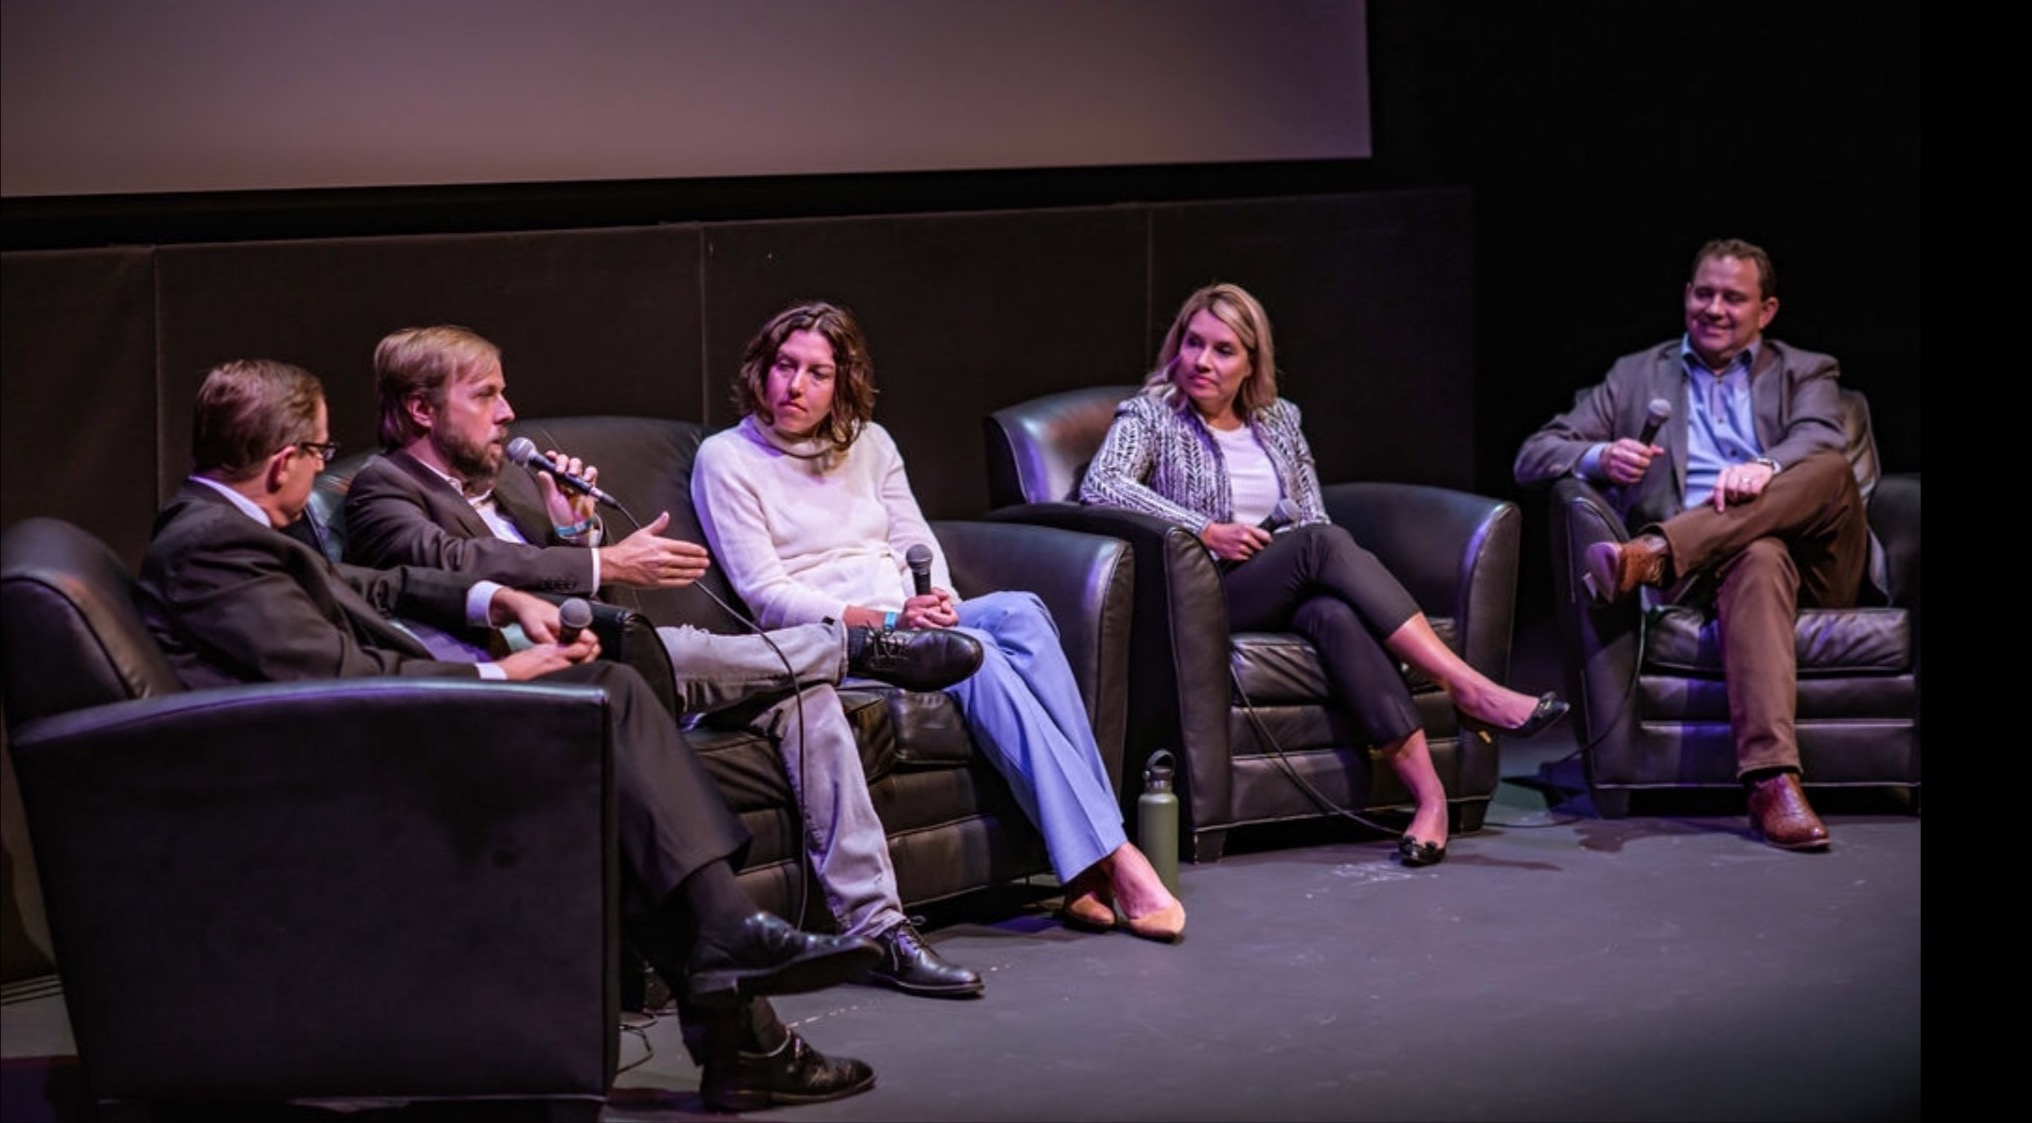 'Thirst for Power' Panel Discussion @ Paramount Theater Austin Texas December 2018